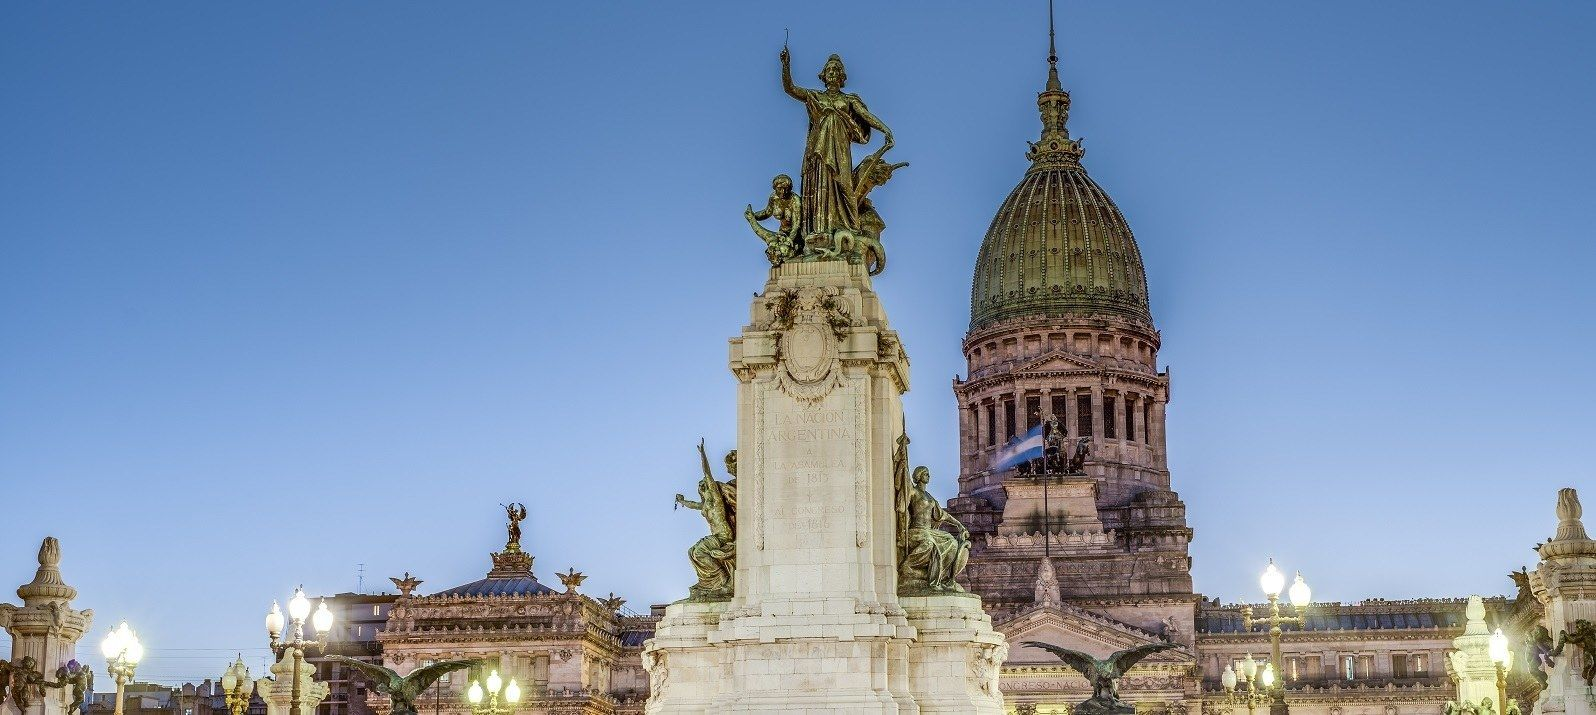 Buenos Aires, Argentina attractions